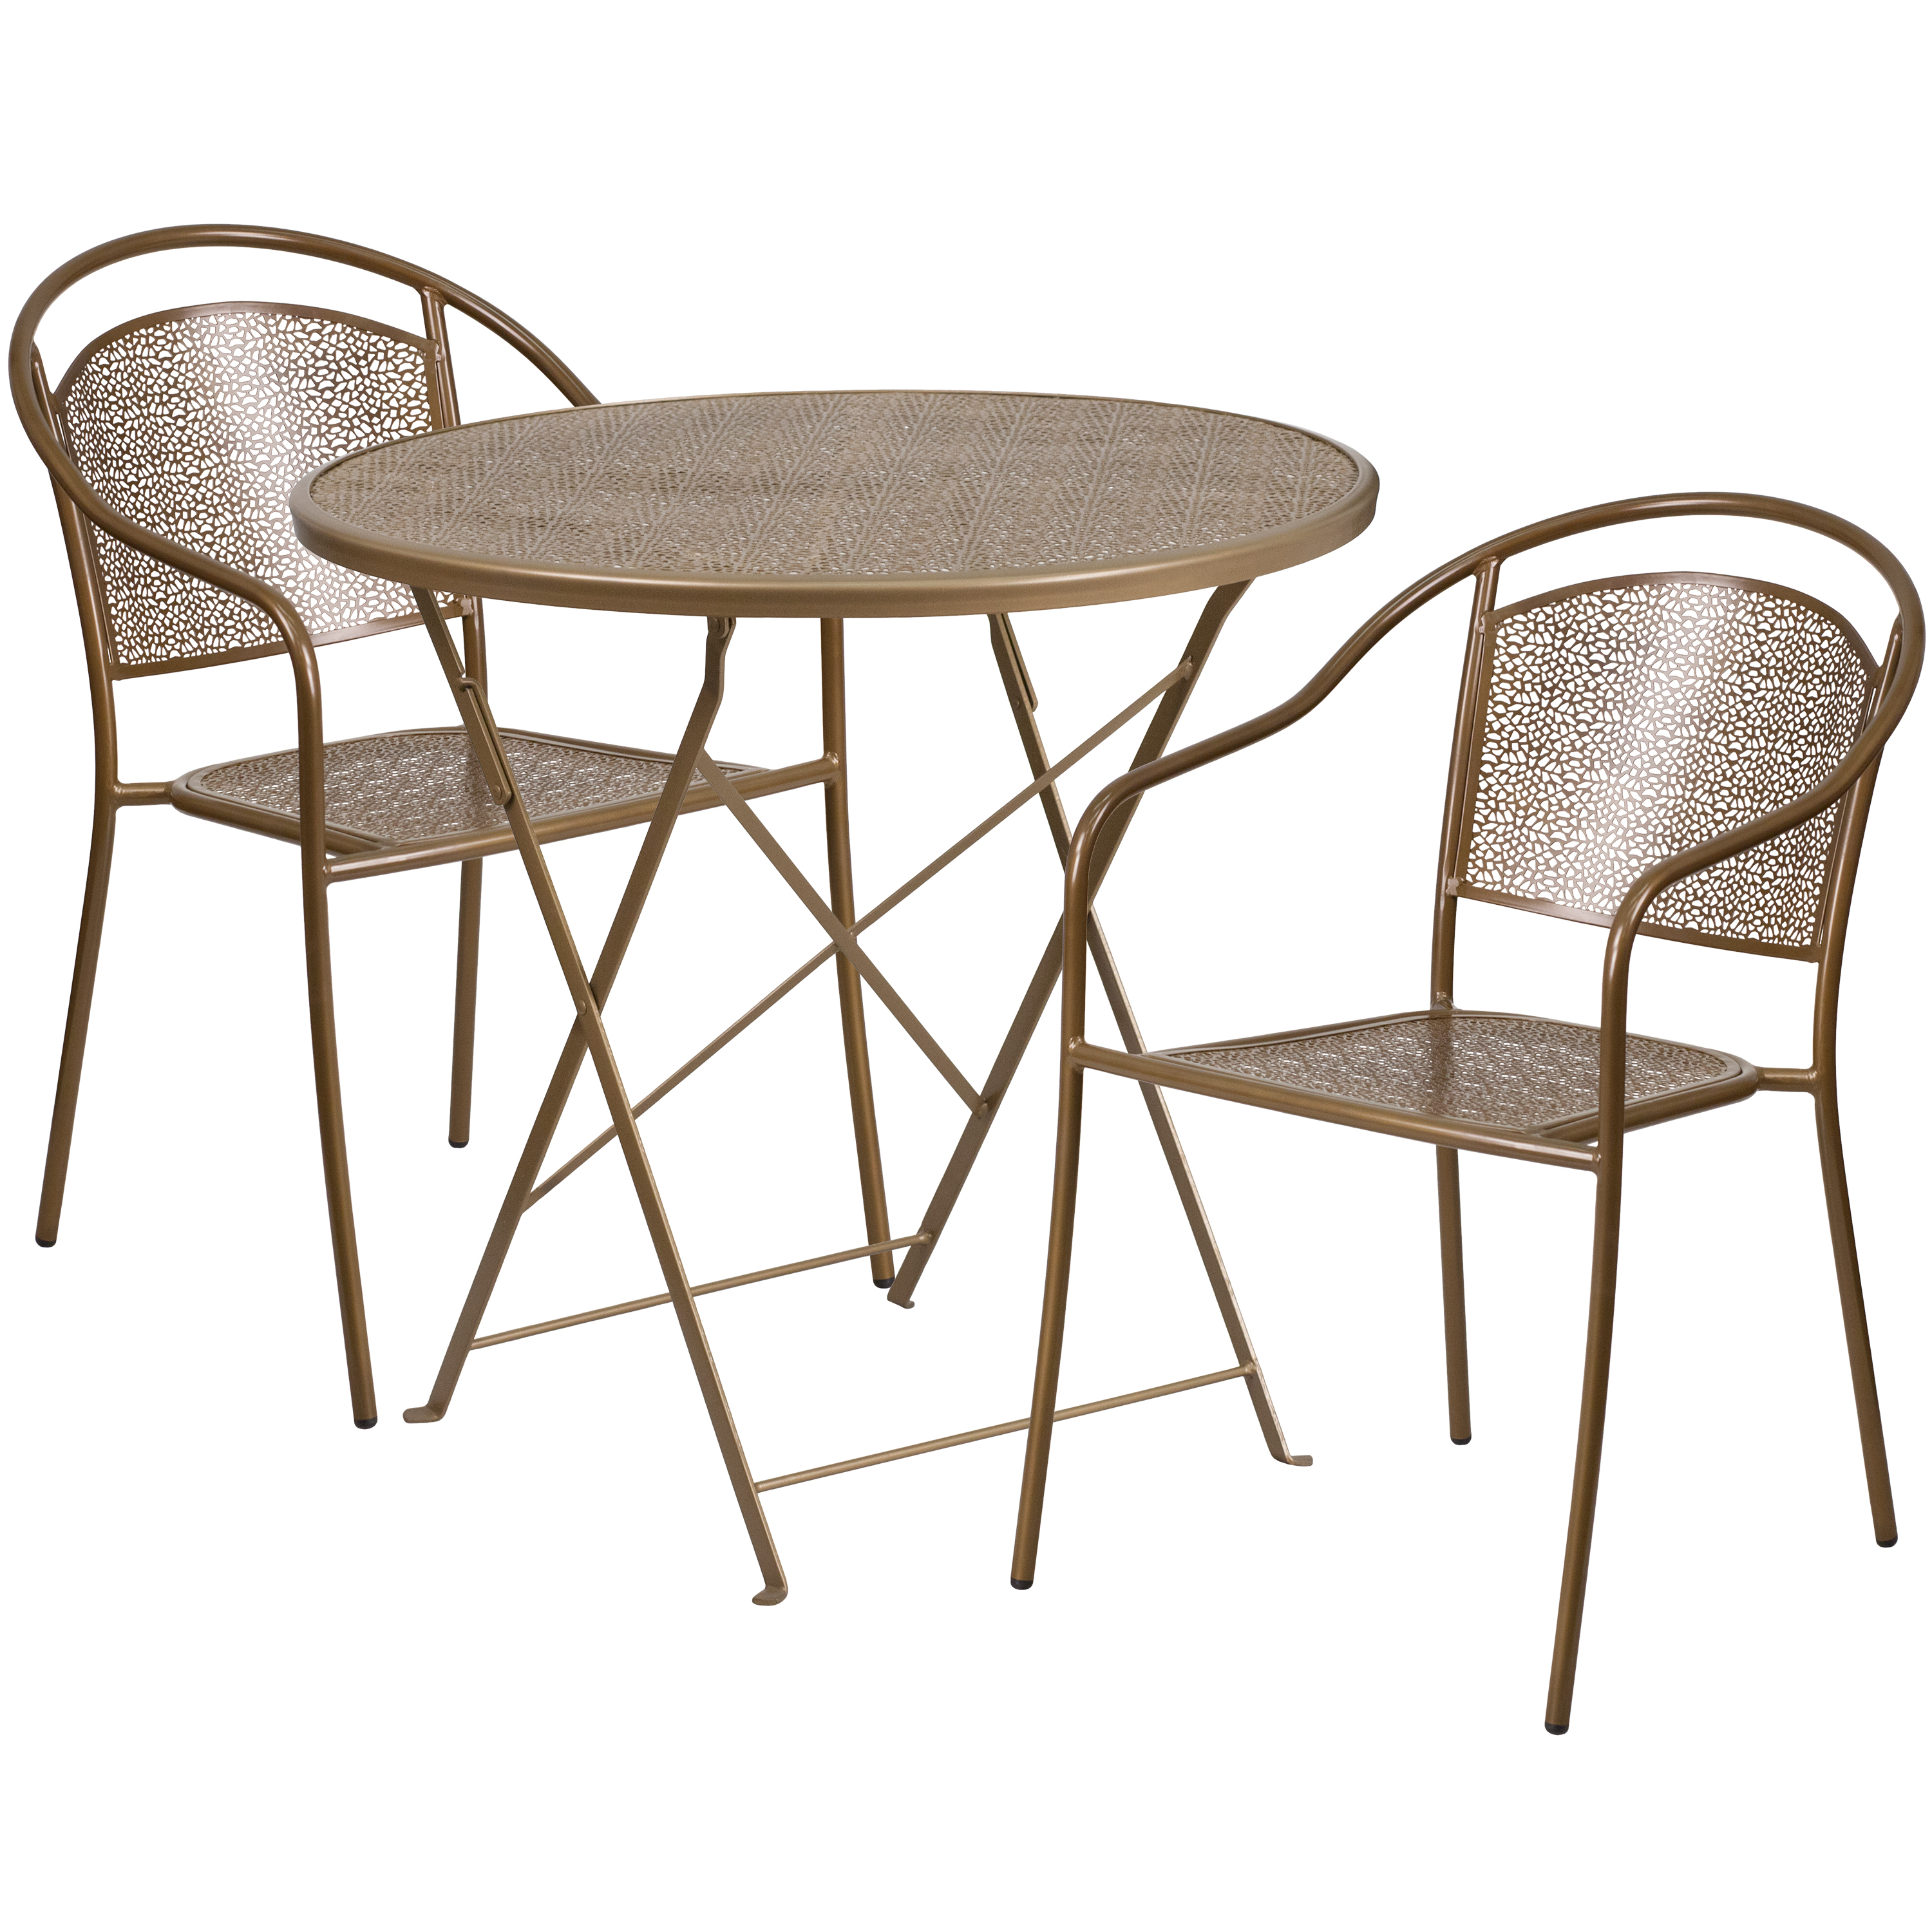 Flash Furniture 30'' Round Indoor-Outdoor Steel Folding Patio Table Set with 2 Round Back Chairs, Multiple Colors